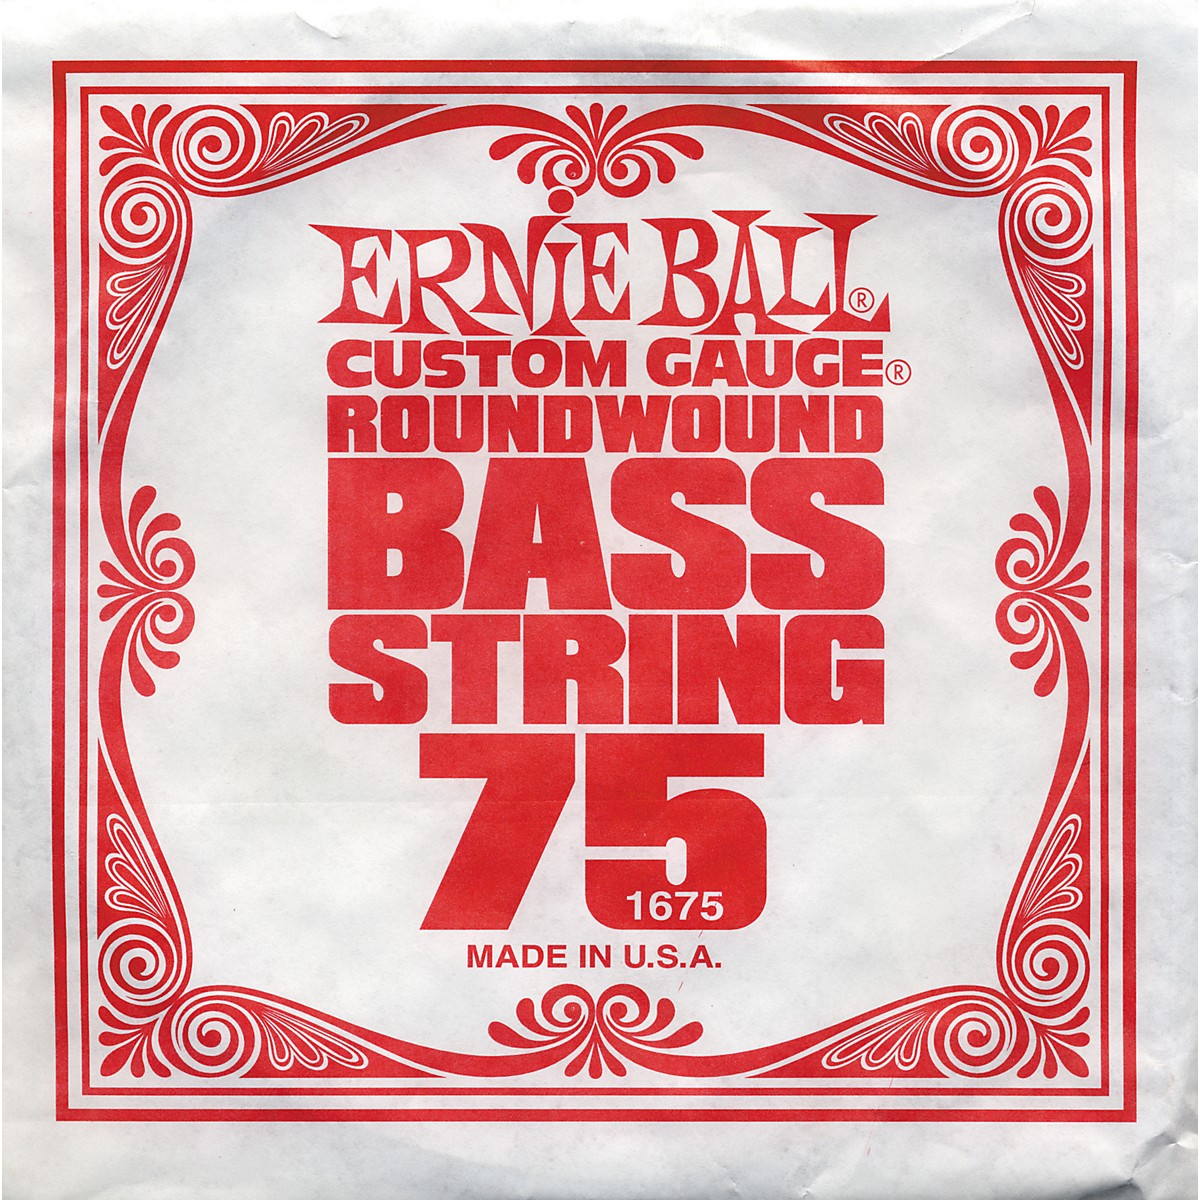 Ernie Ball 1675 Single Bass Guitar String